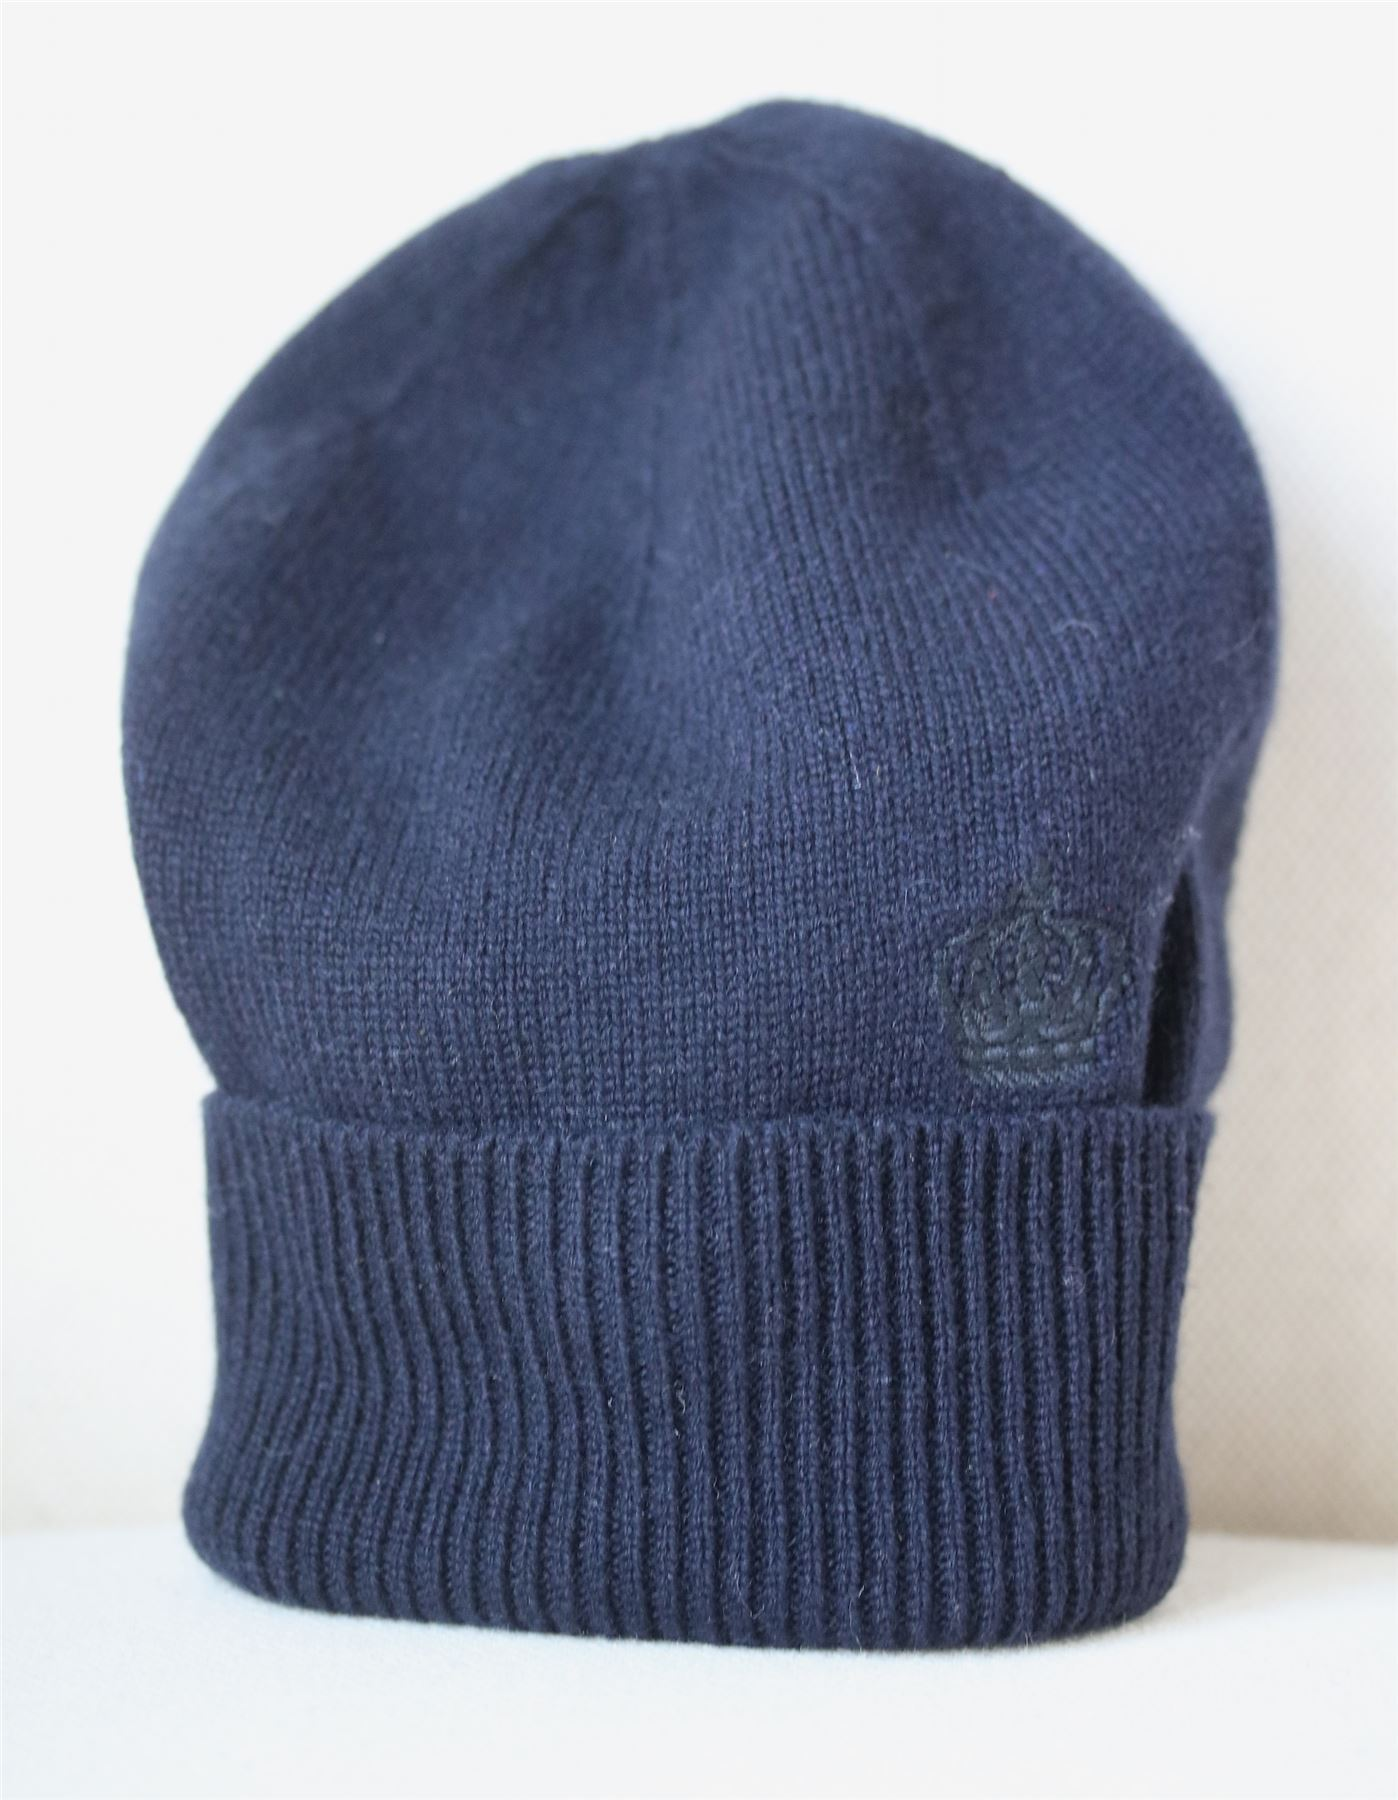 6c947033bcf9 Details about DOLCE   GABBANA NAVY BLUE CASHMERE HAT S 2-4 YEARS